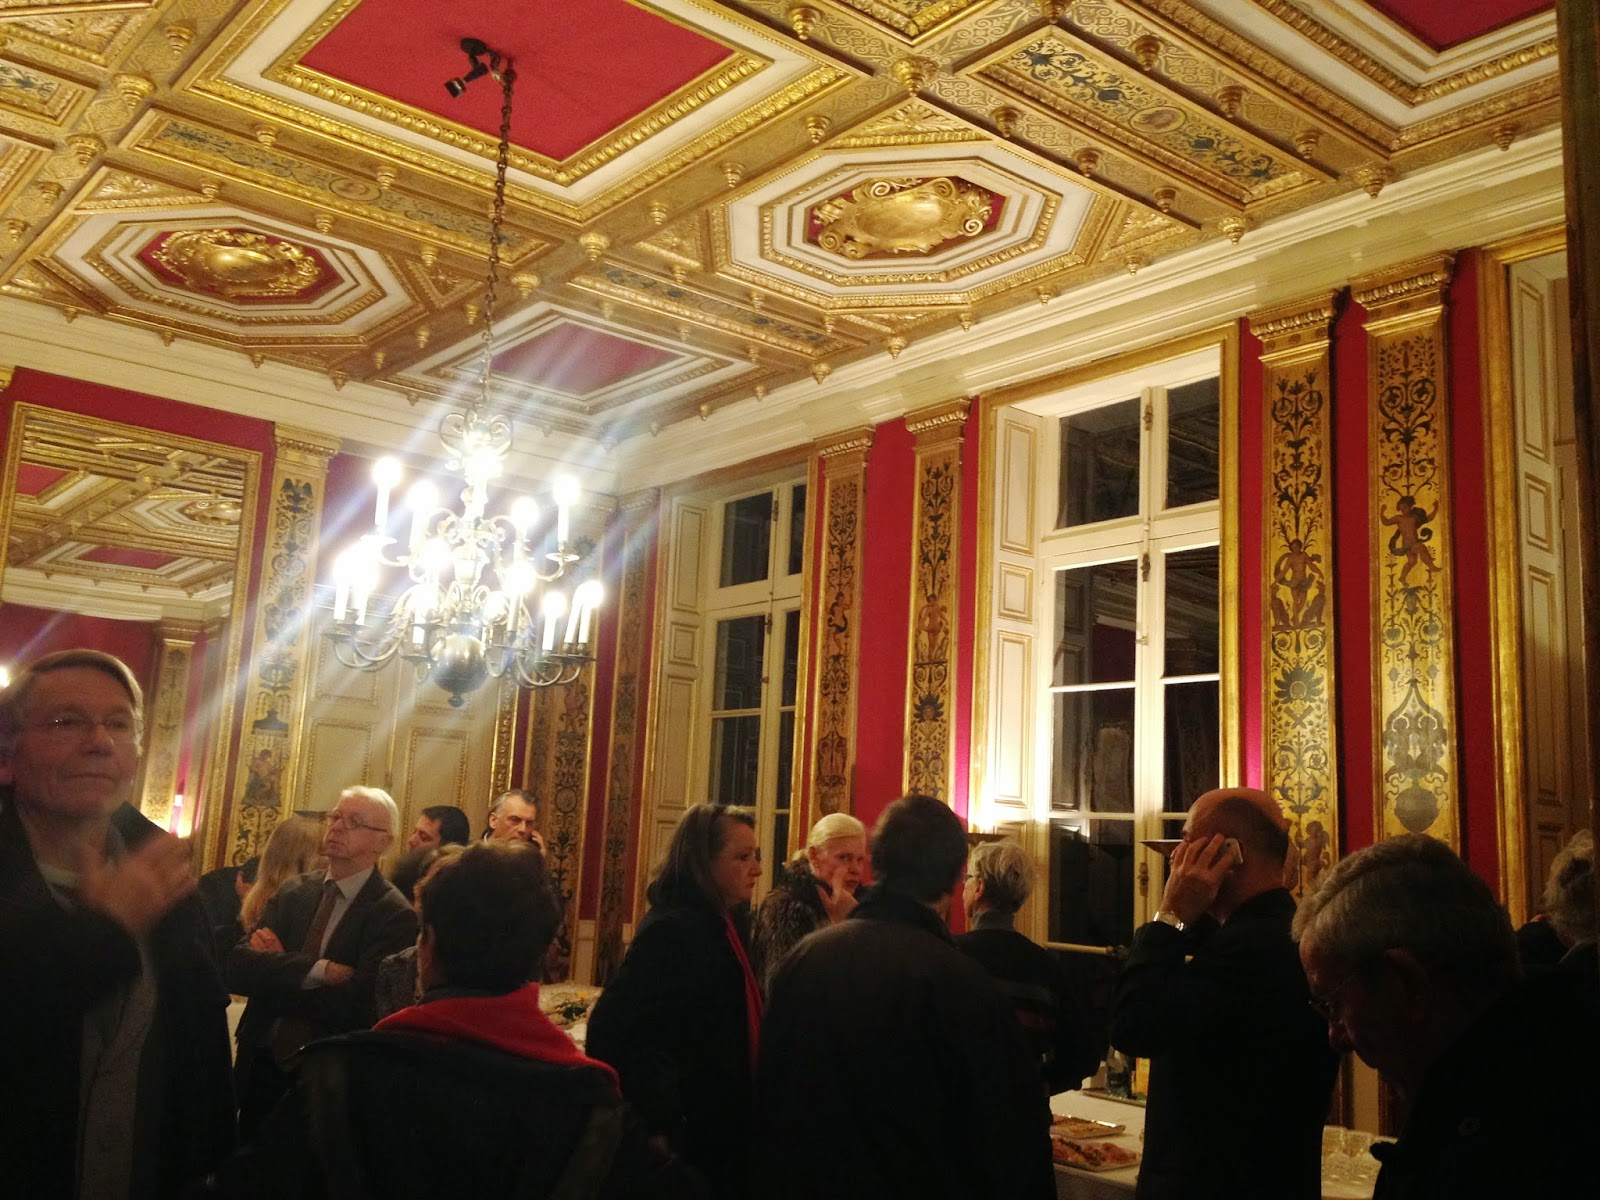 Guests at the Mairie du 7e, Paris